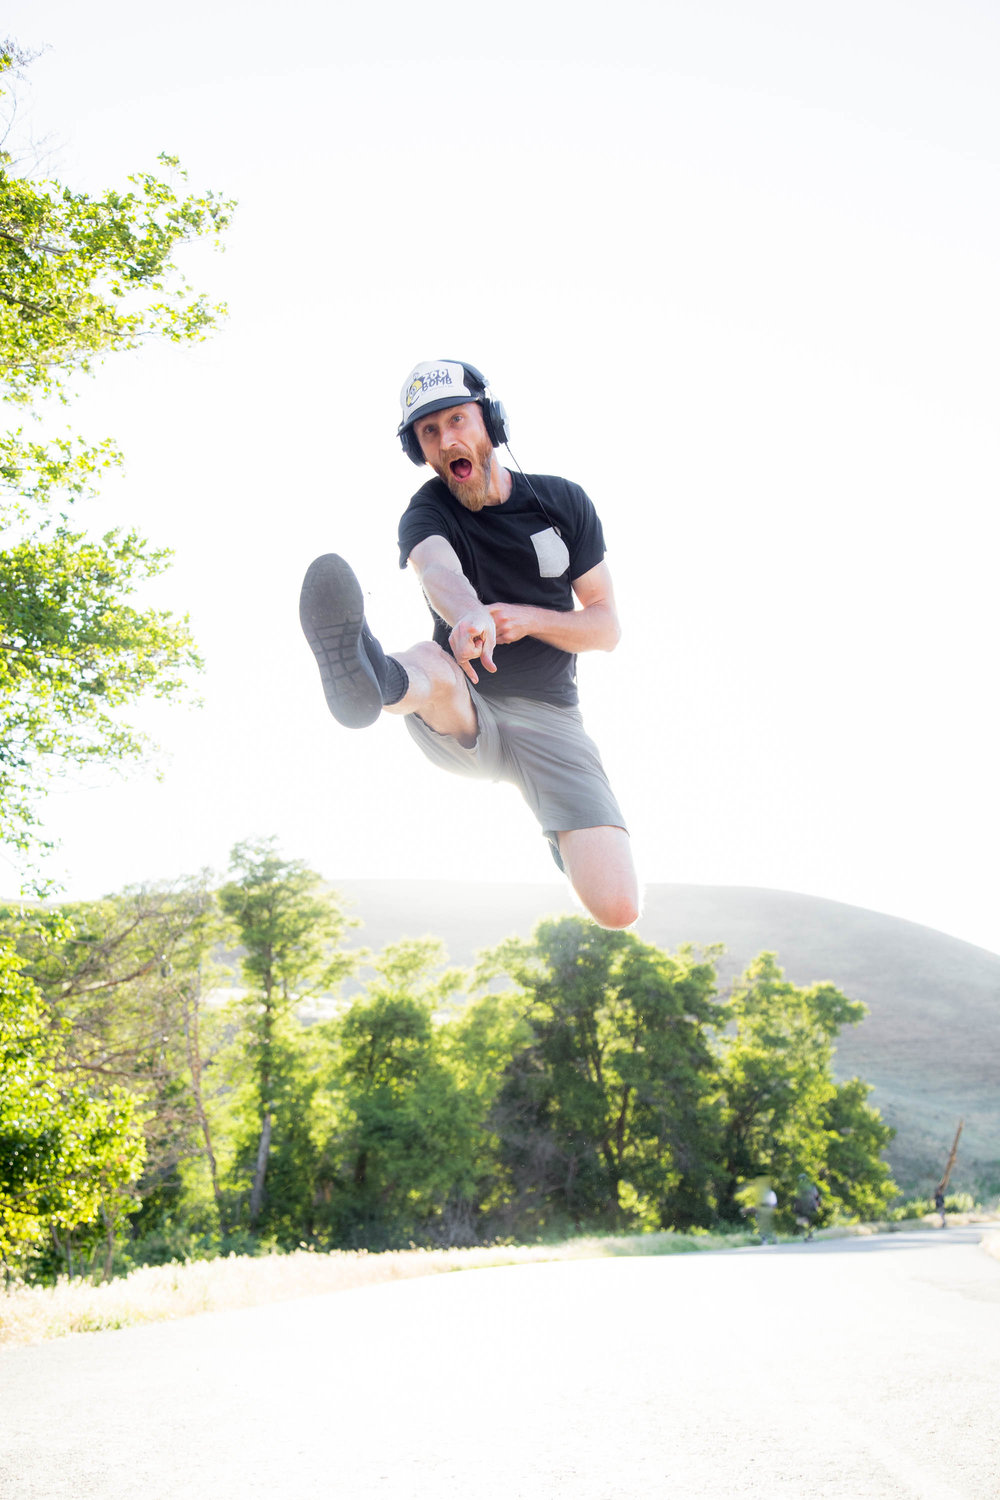 jonjump (1 of 1).JPG